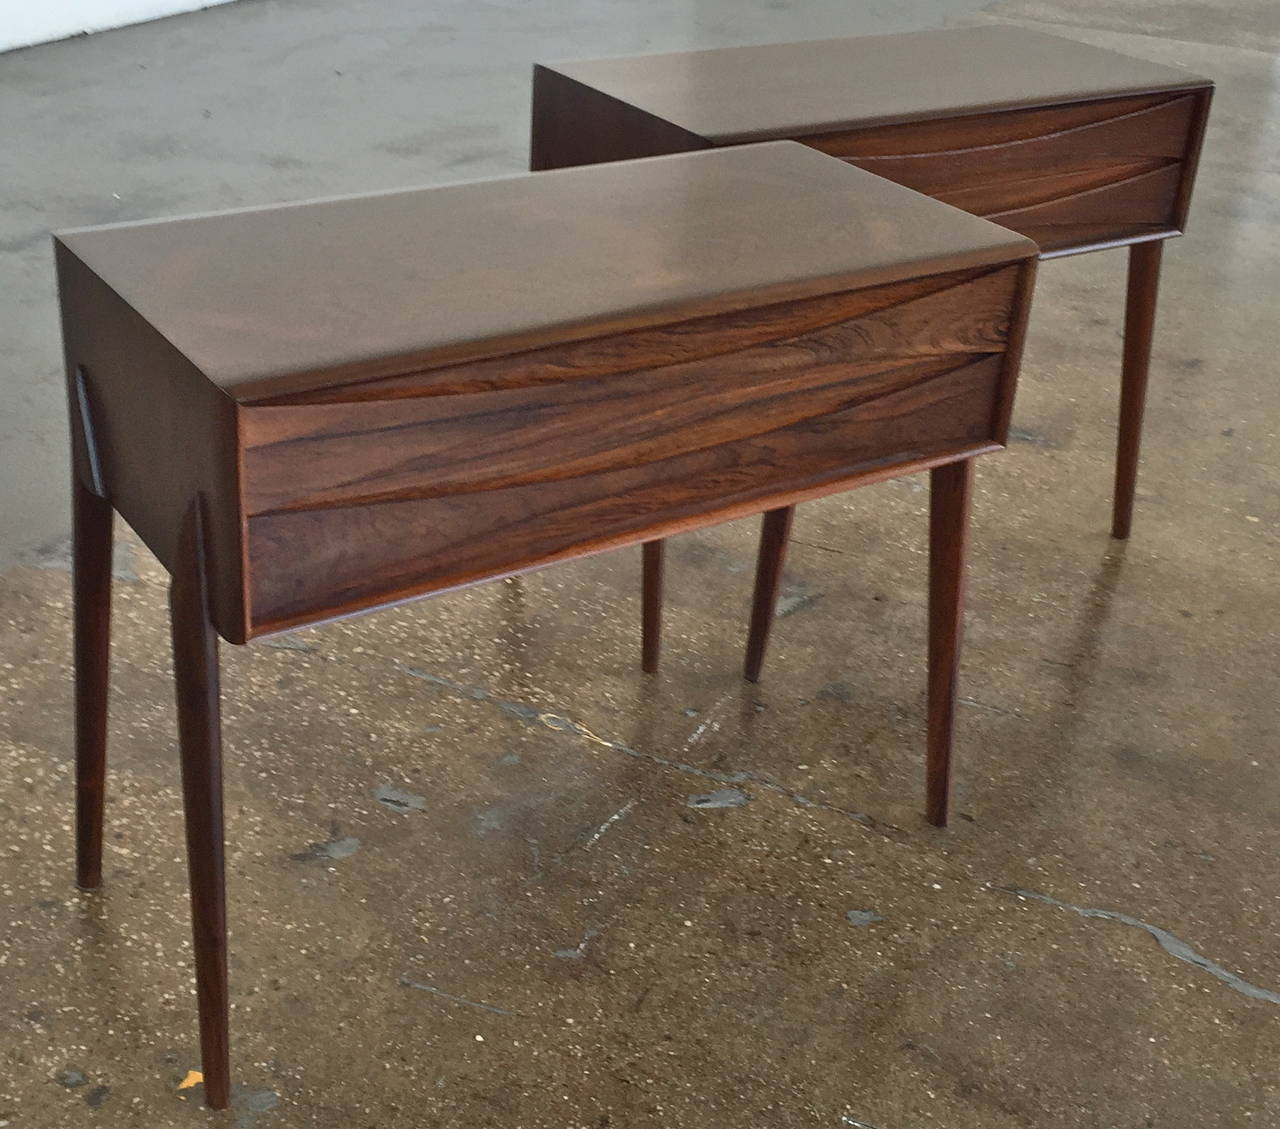 near a pair of low cabinets nightstands by arne vodder at stdibs - near a pair of low cabinets nightstands by arne vodder